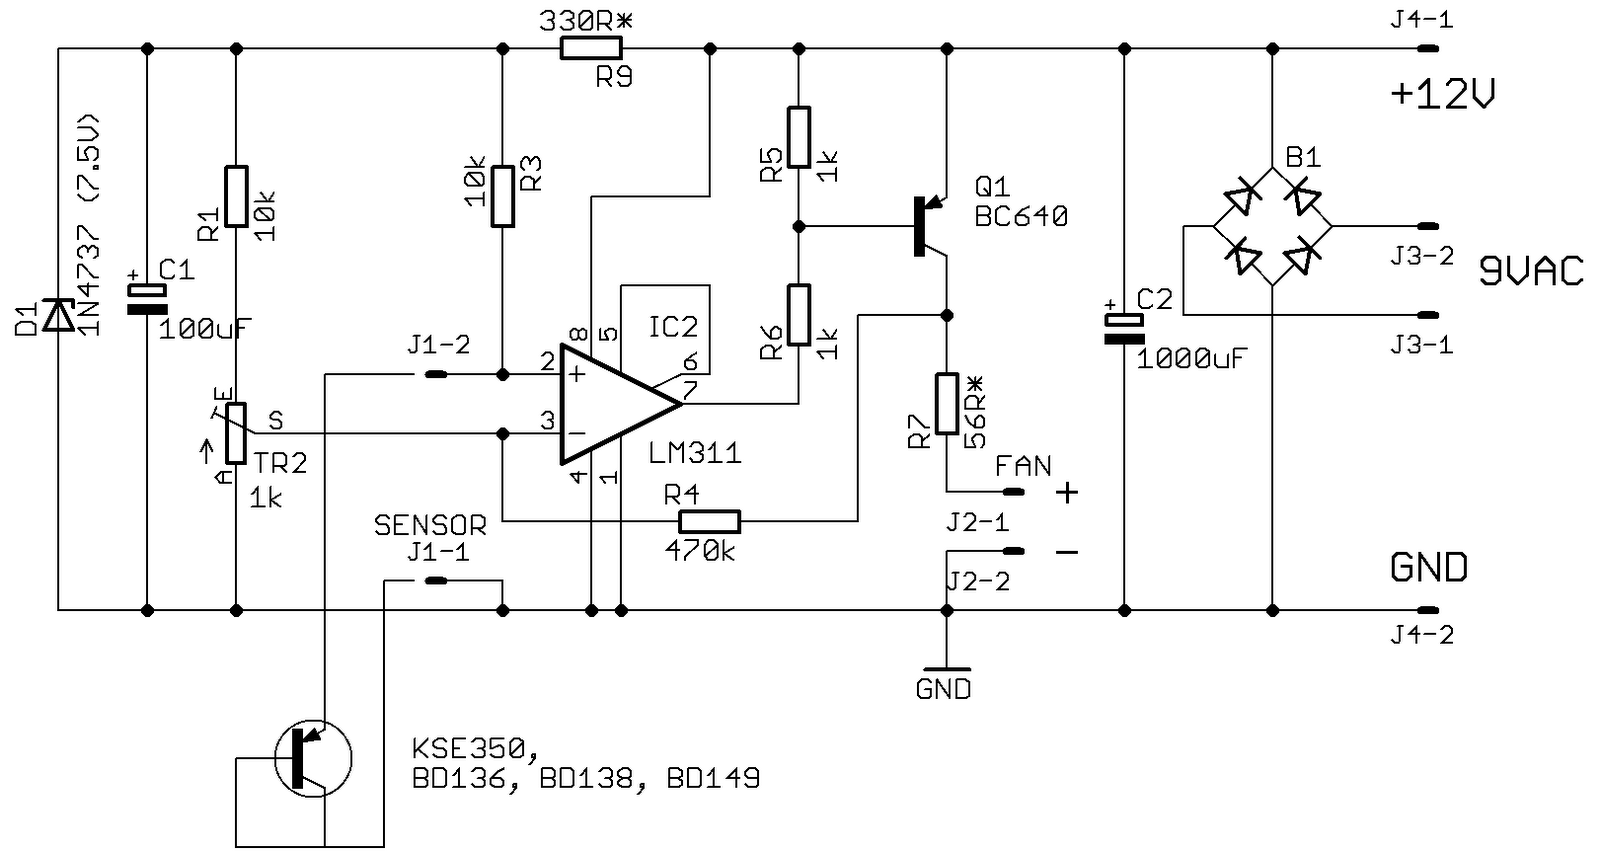 Diyfan Adjustable Lab Power Supply 25v 5a Lm338 Circuit Diagram And The Schematic May Be Supplied With Ac Or Dc Voltage But Not Both Simultaneously If Is Then B1 C2 J3 Omitted